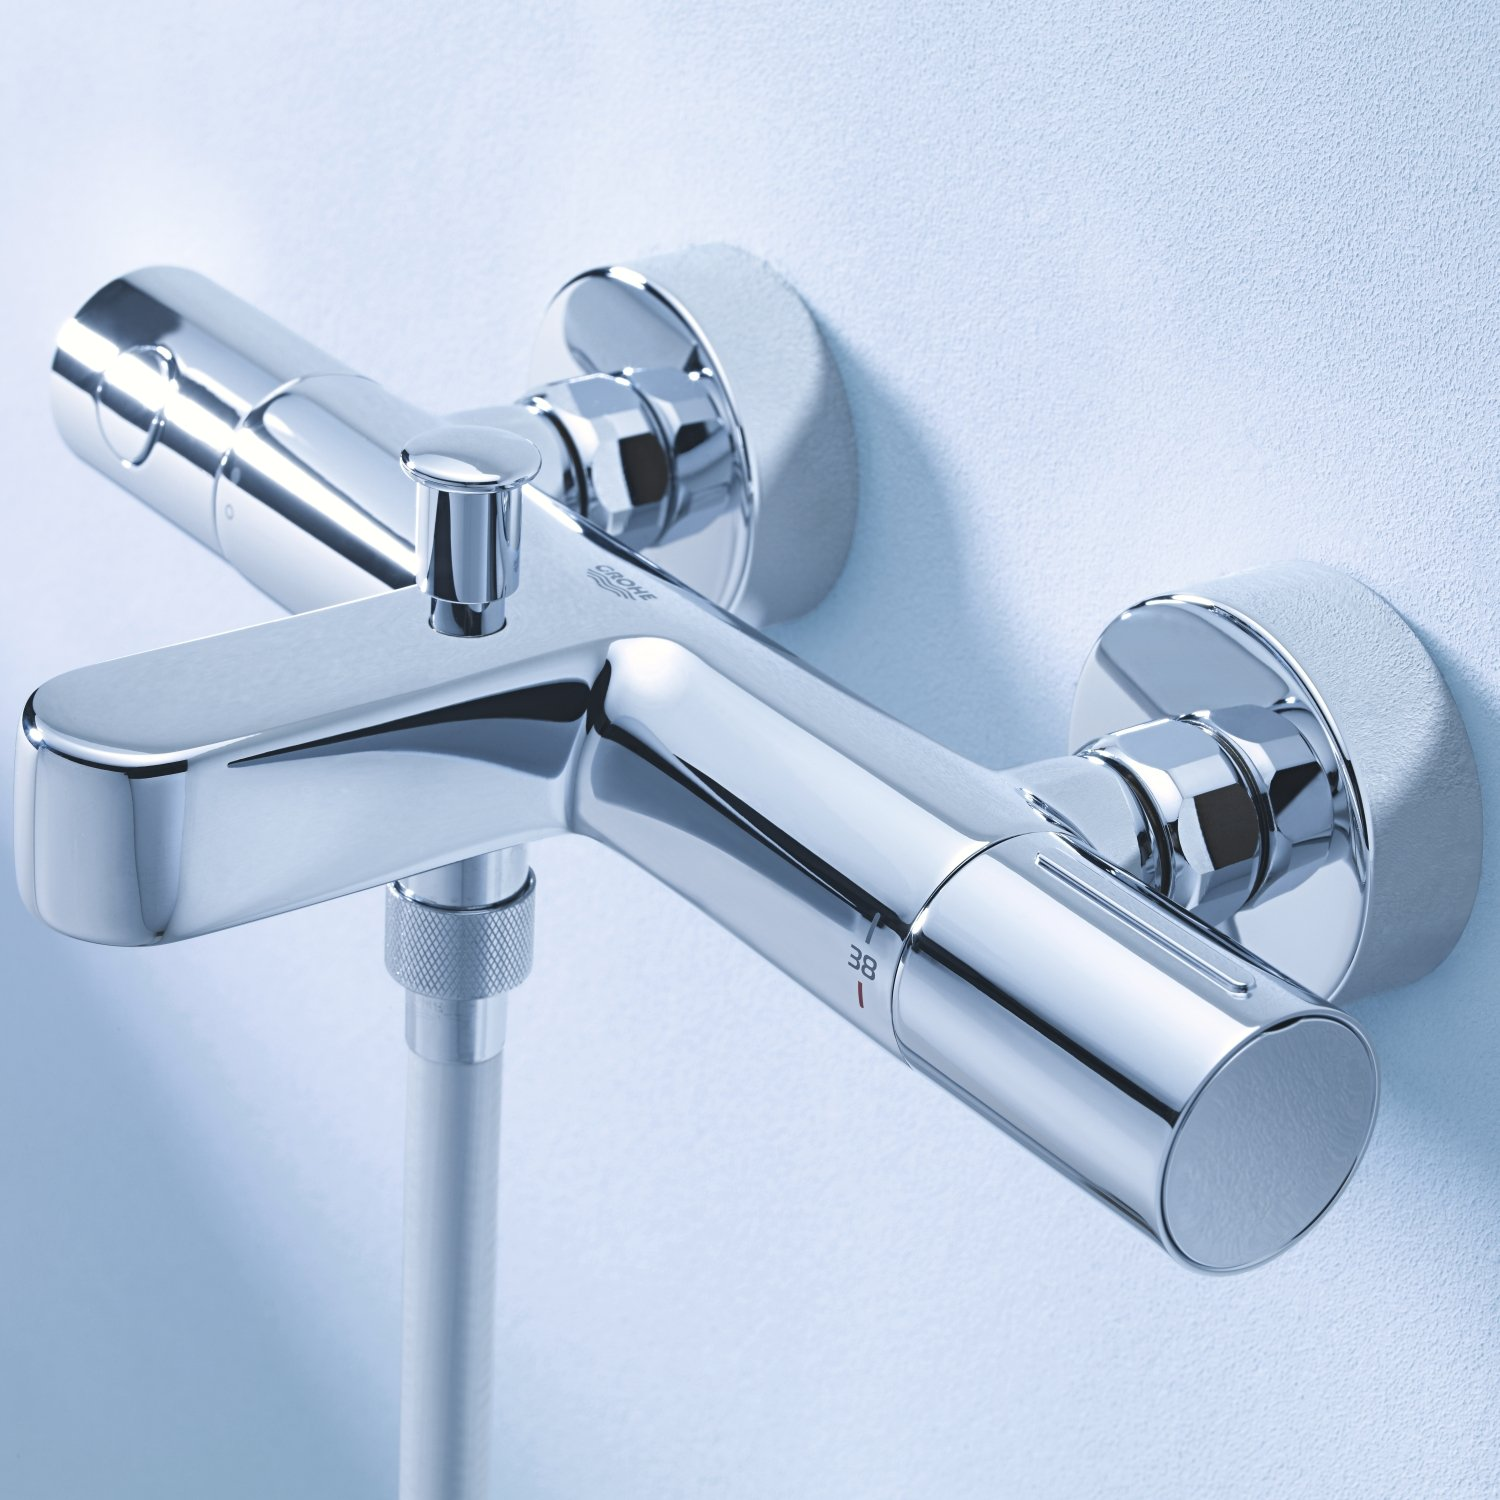 grohe 1000 thermostatic bath shower mixer. grohe 34441002 | grohtherm 1000 cosmopolitan m thermostatic bath/shower mixer: amazon.co.uk: diy \u0026 tools grohe bath shower mixer h